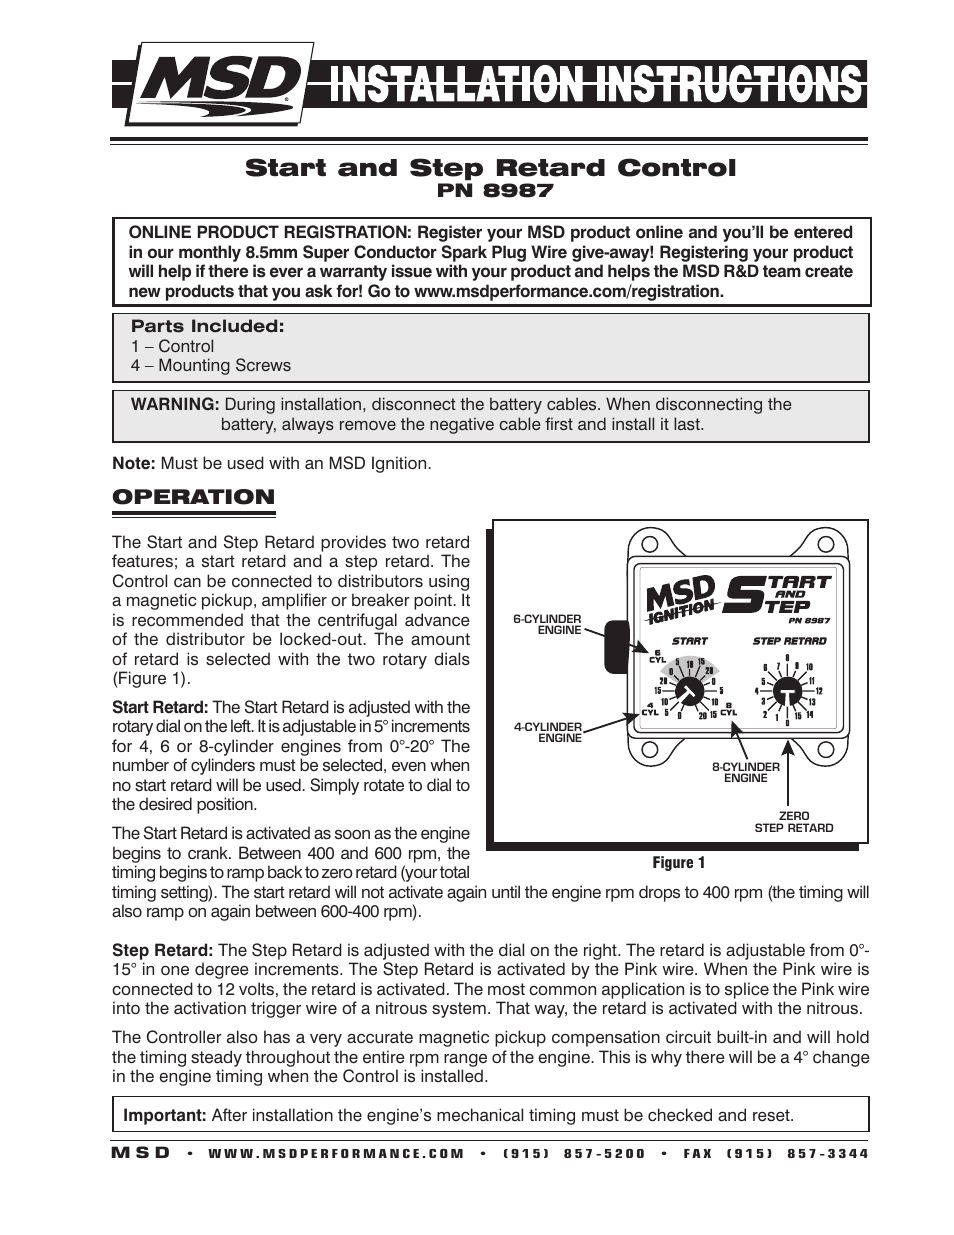 Msd 8987 Start And Step Timing Control Installation User Manual